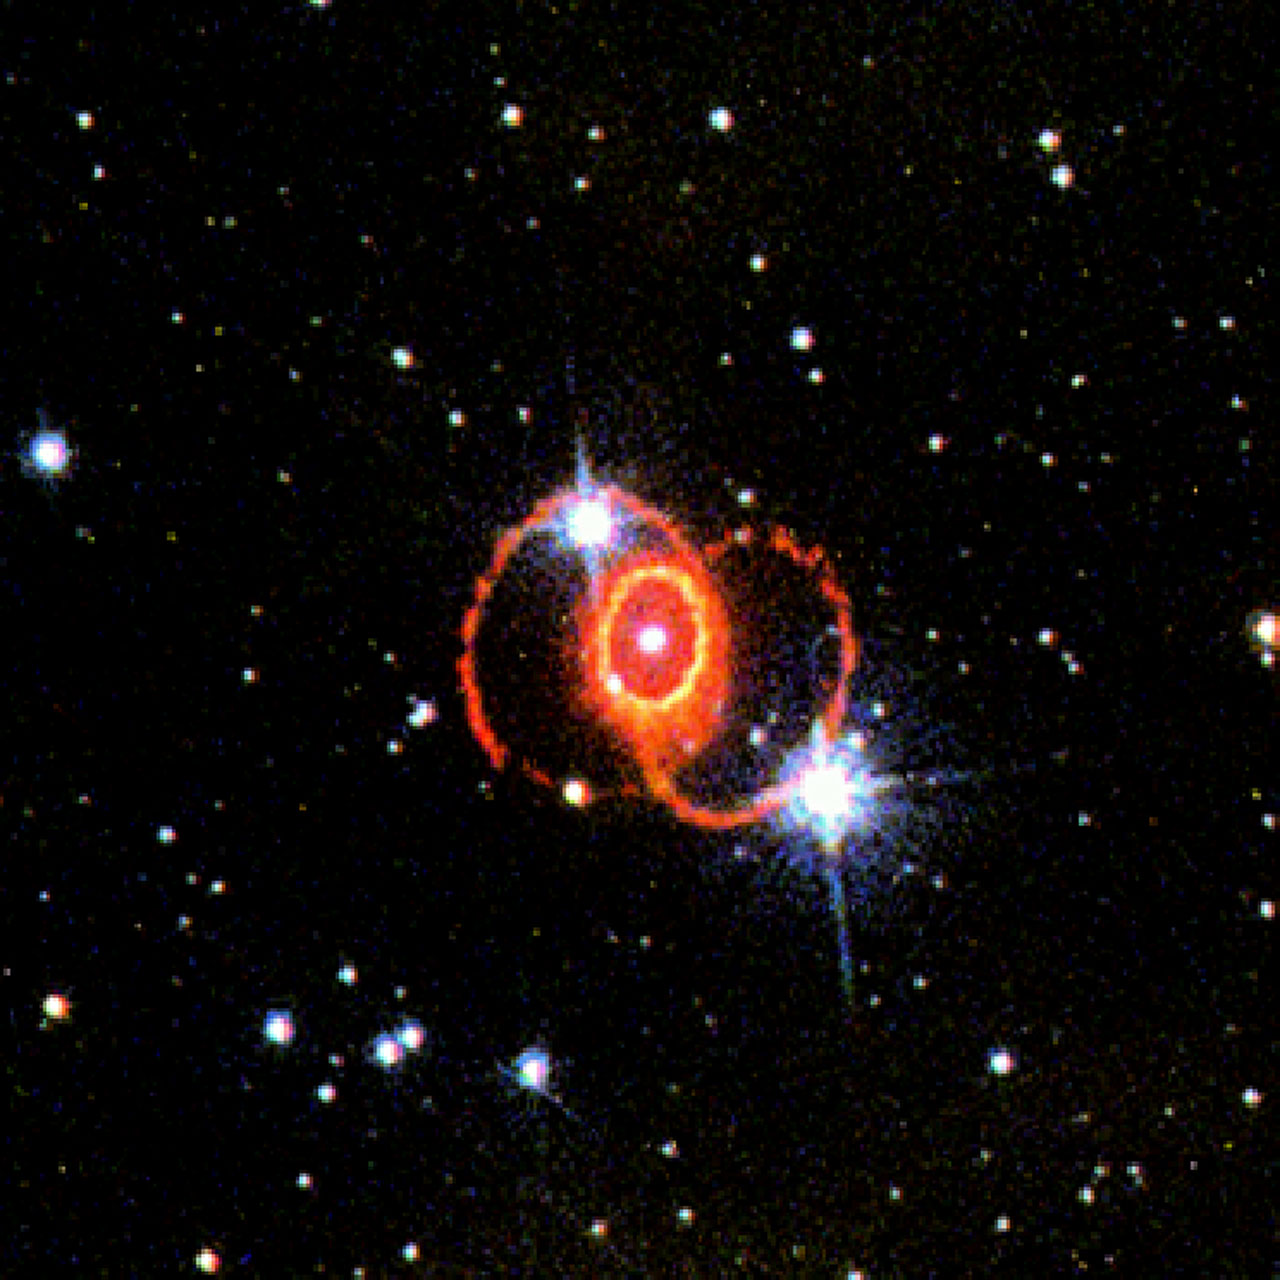 Solar System 3d Wallpaper Stis Chemically Analyzes The Ring Around Sn 1987a Esa Hubble